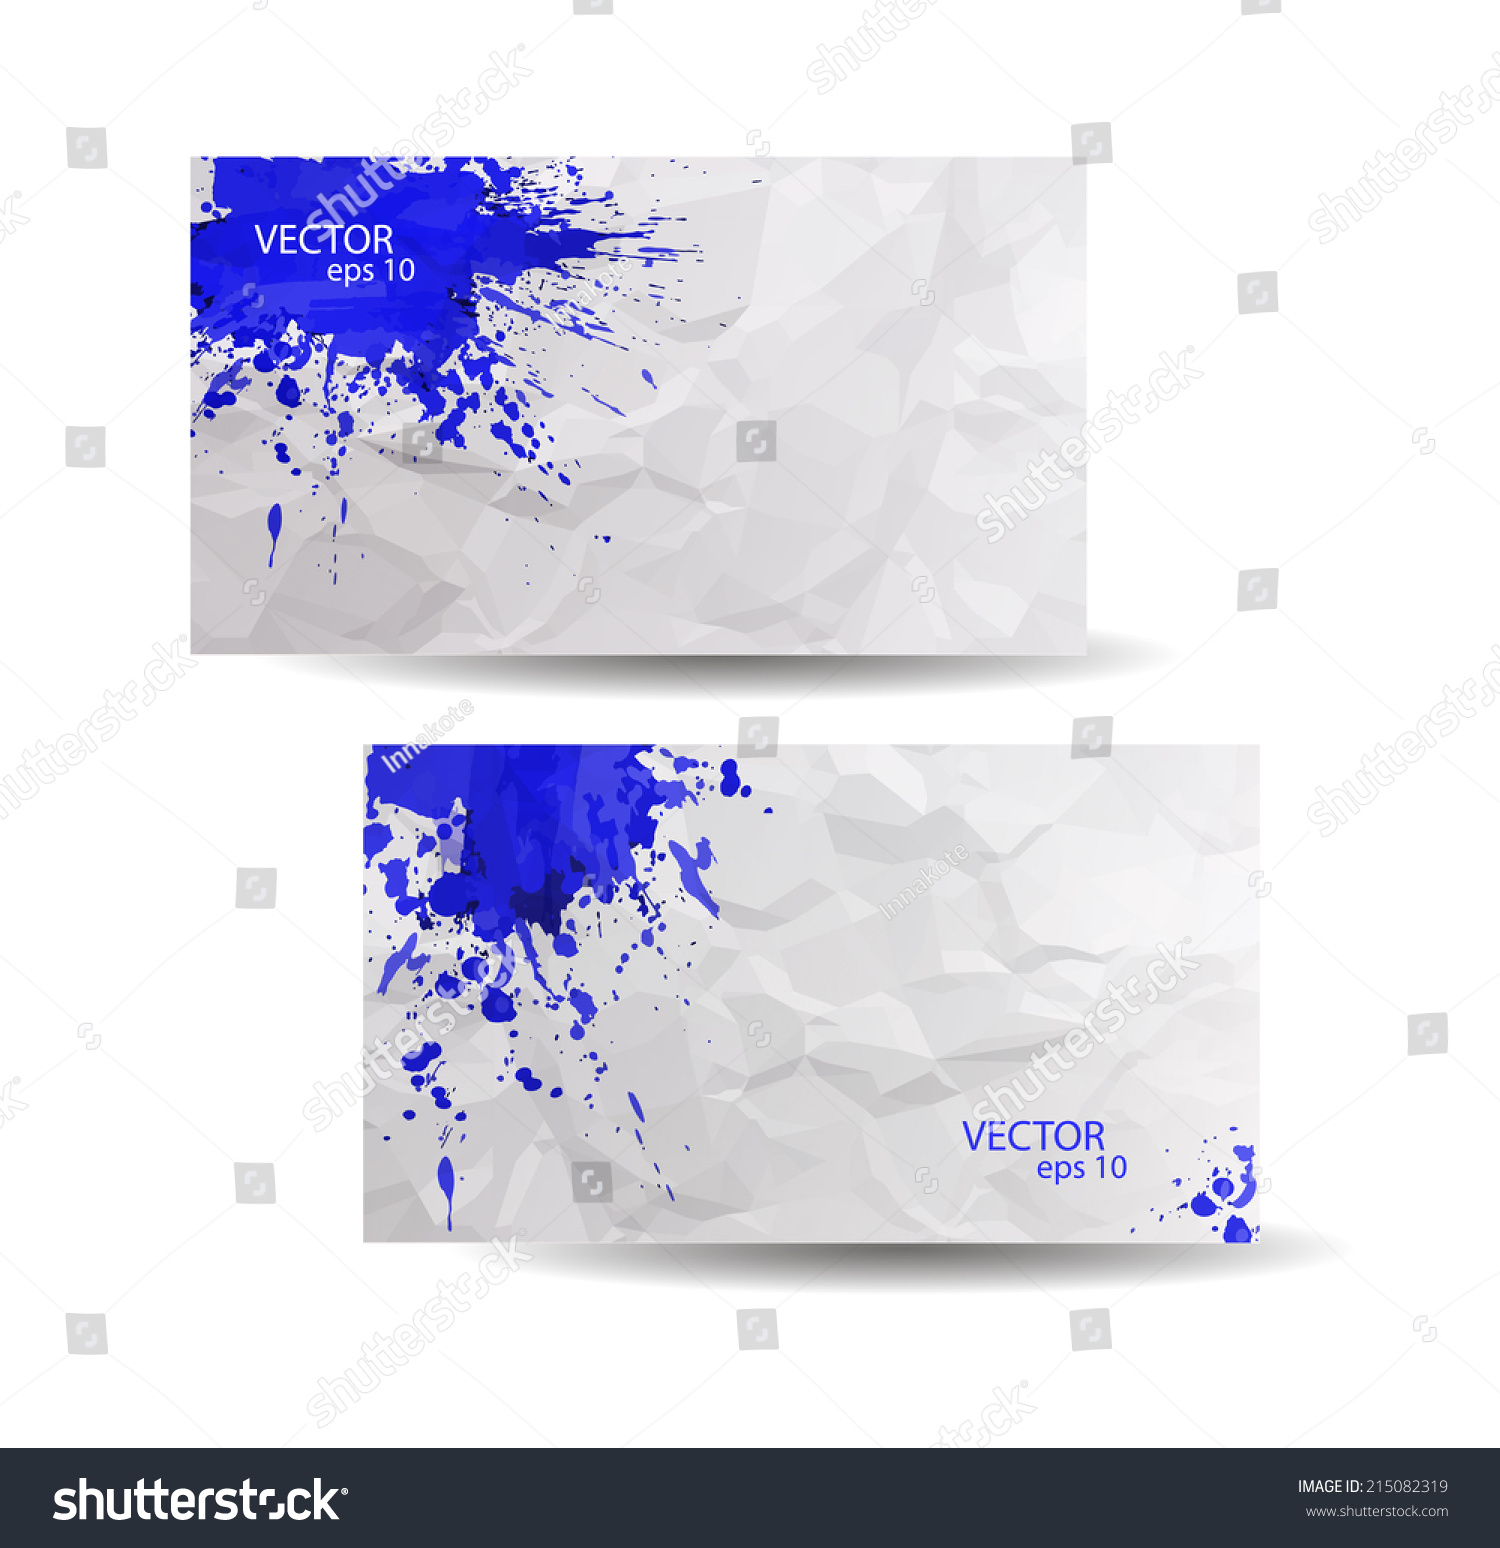 Business cards template blue abstract spray stock vector 215082319 business cards template with blue abstract spray paint crumpled paper background hand drawn colourmoves